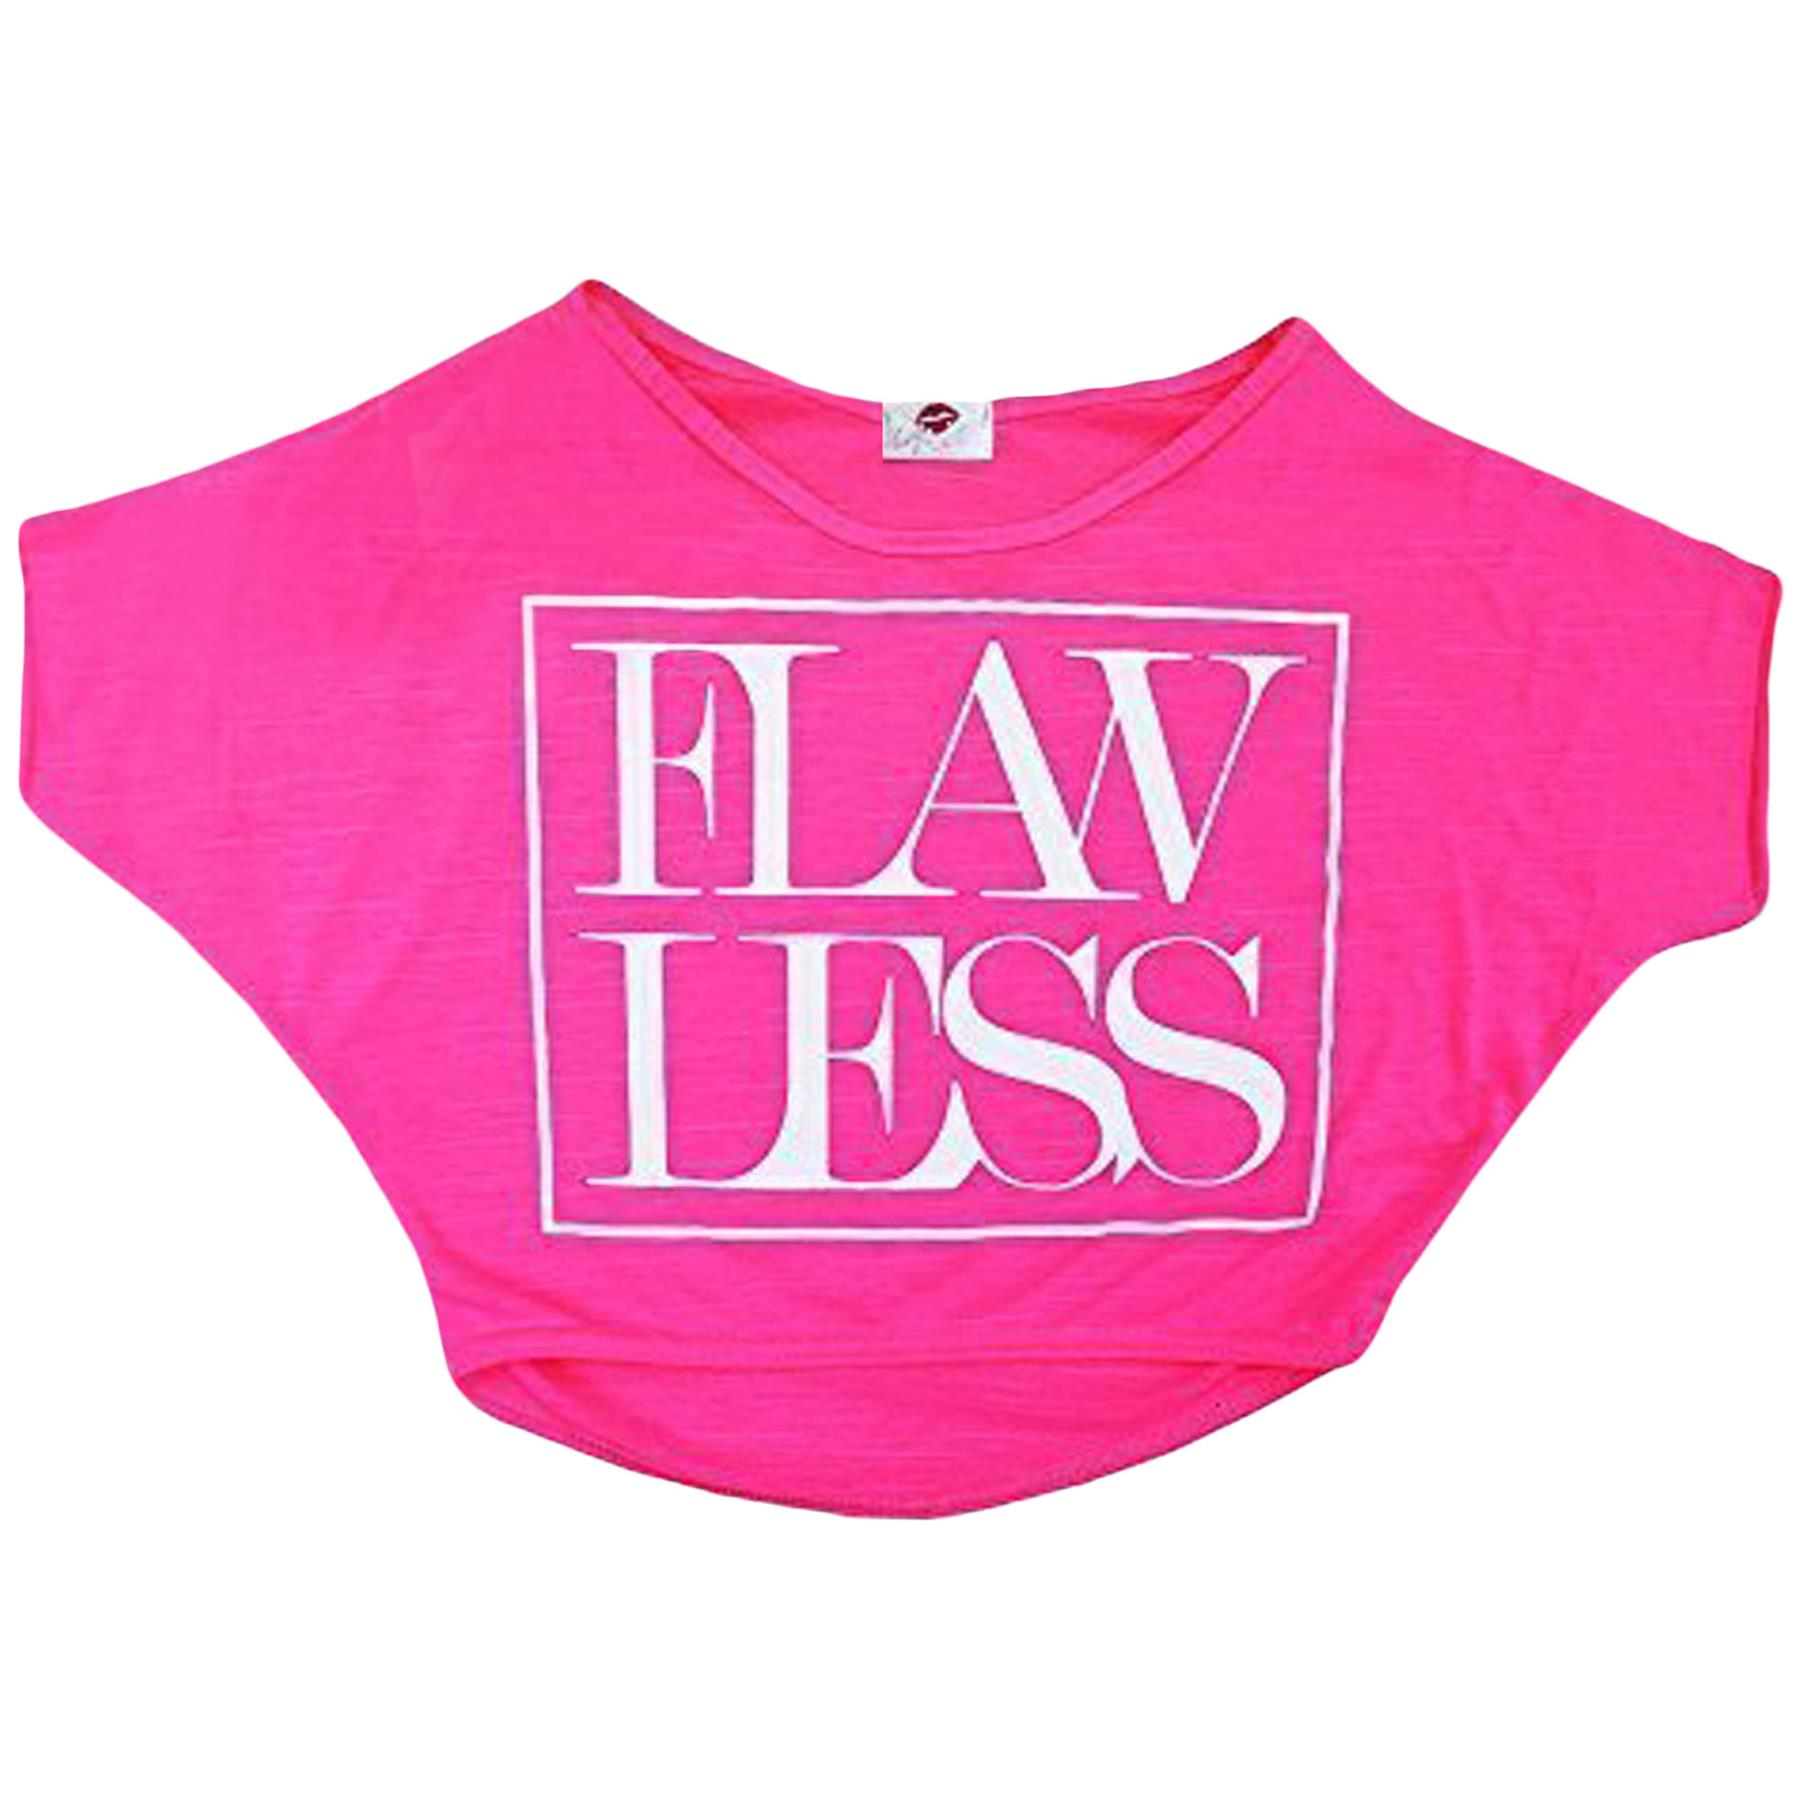 Kids-Girls-New-Season-034-FLAWLESS-034-Print-Crop-Top-Stylish-Fashion-T-Shirt-Age-7-13 miniatuur 11